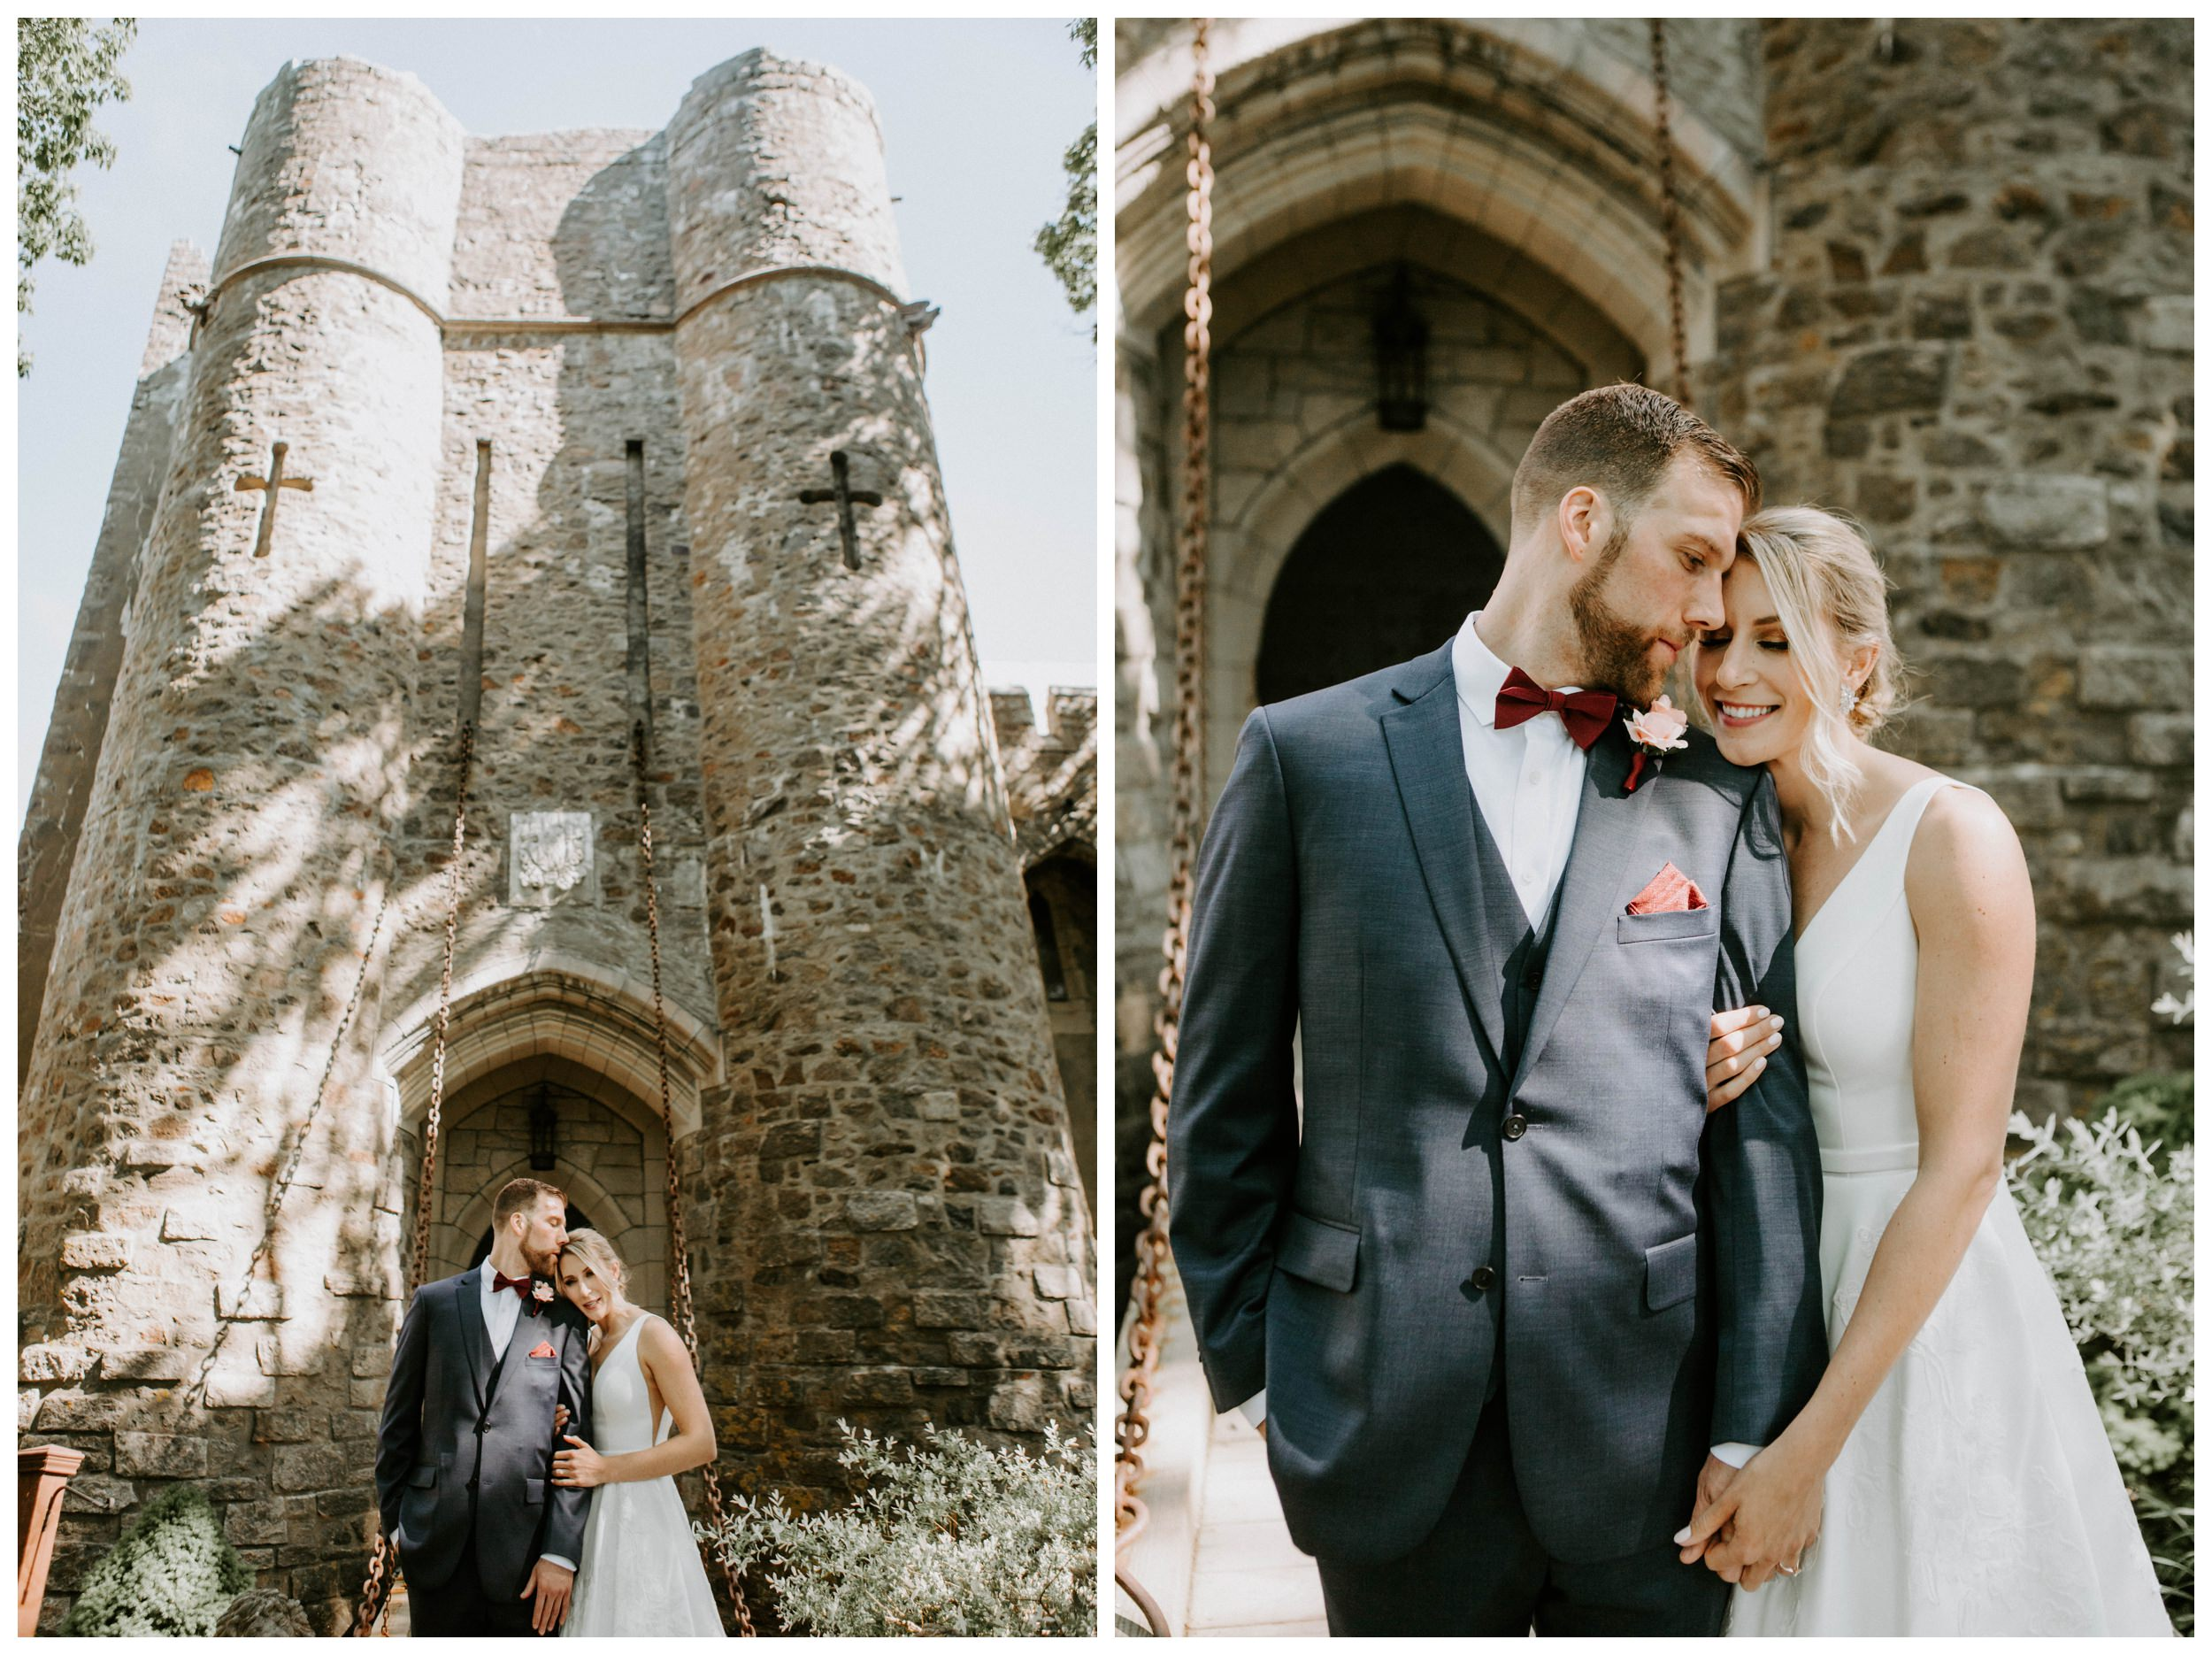 romantic-candlelit-wedding-hammond-castle-museum-gloucester7311111.jpg